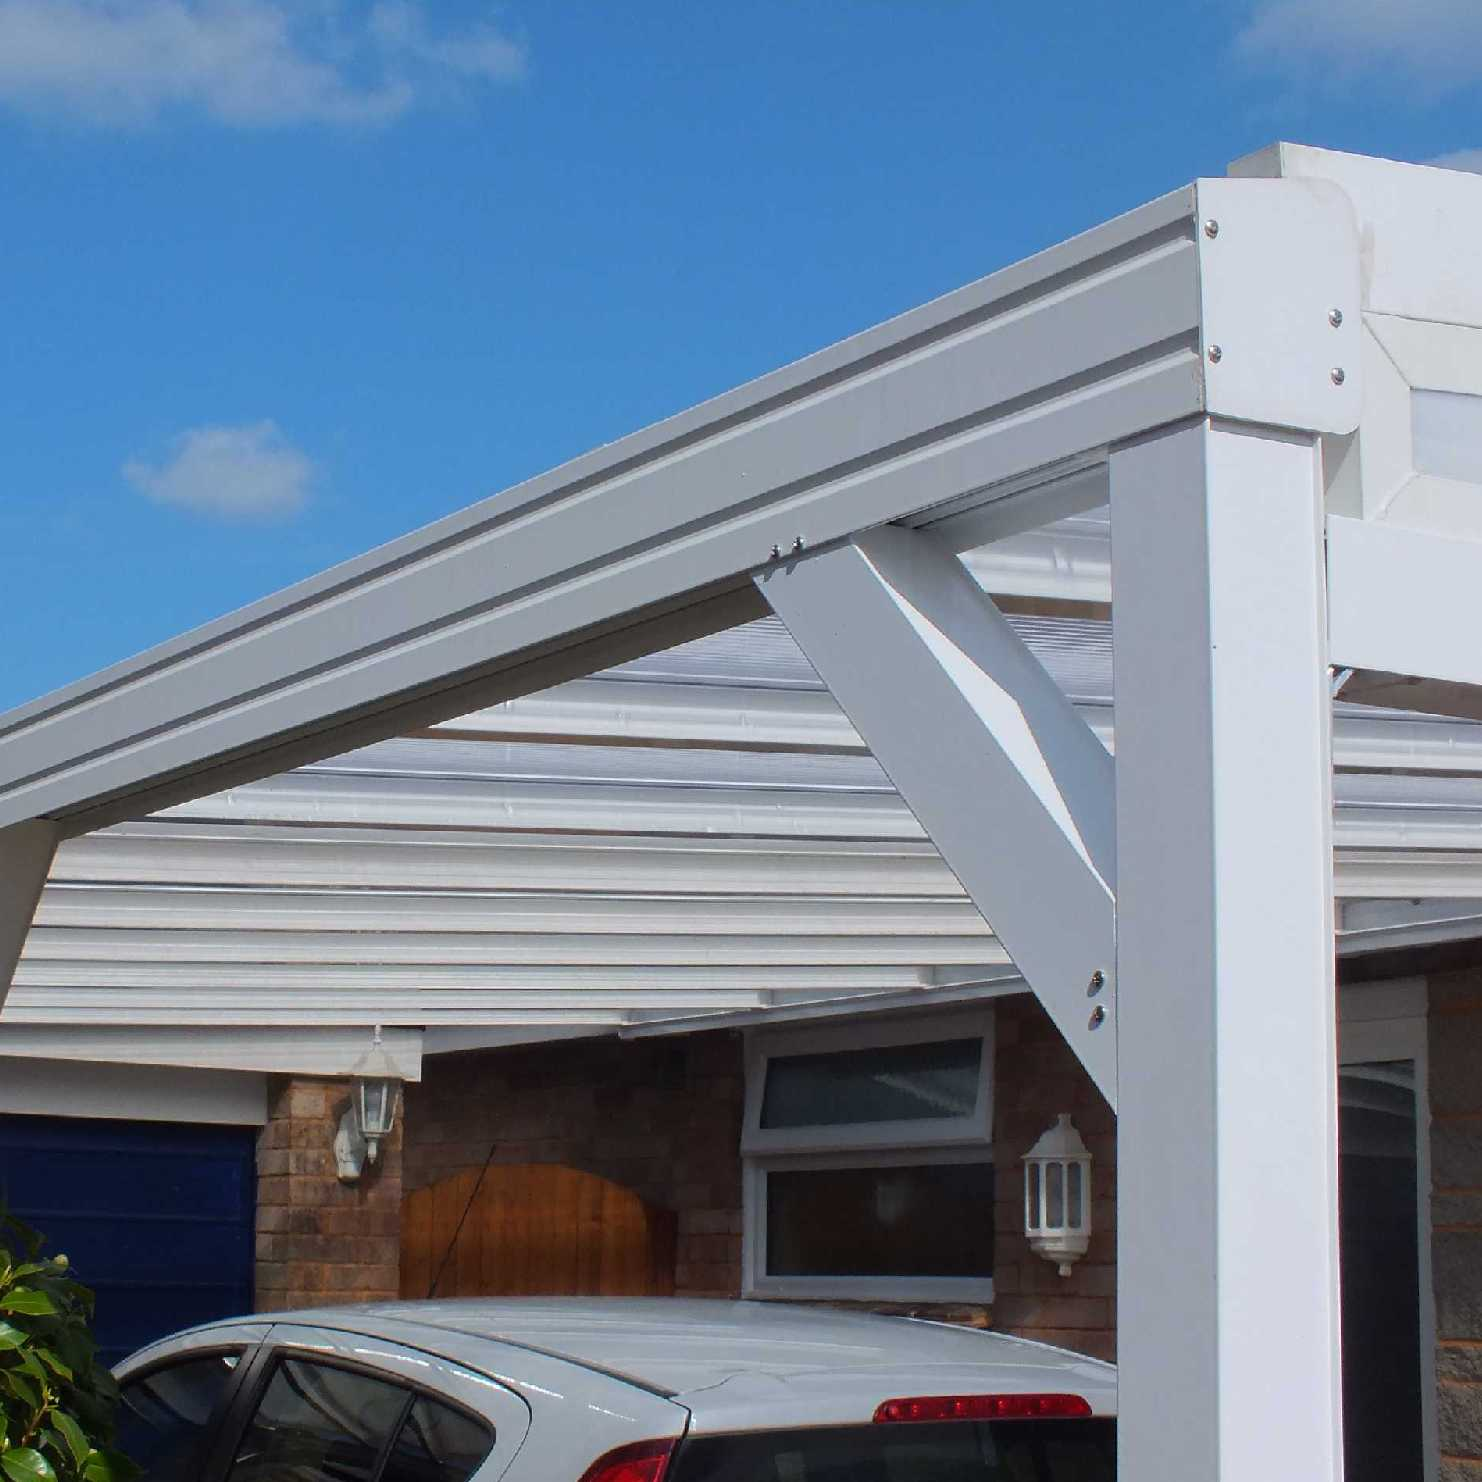 Buy Omega Smart White Lean-To Canopy with 16mm Polycarbonate Glazing - 7.0m (W) x 4.5m (P), (4) Supporting Posts online today